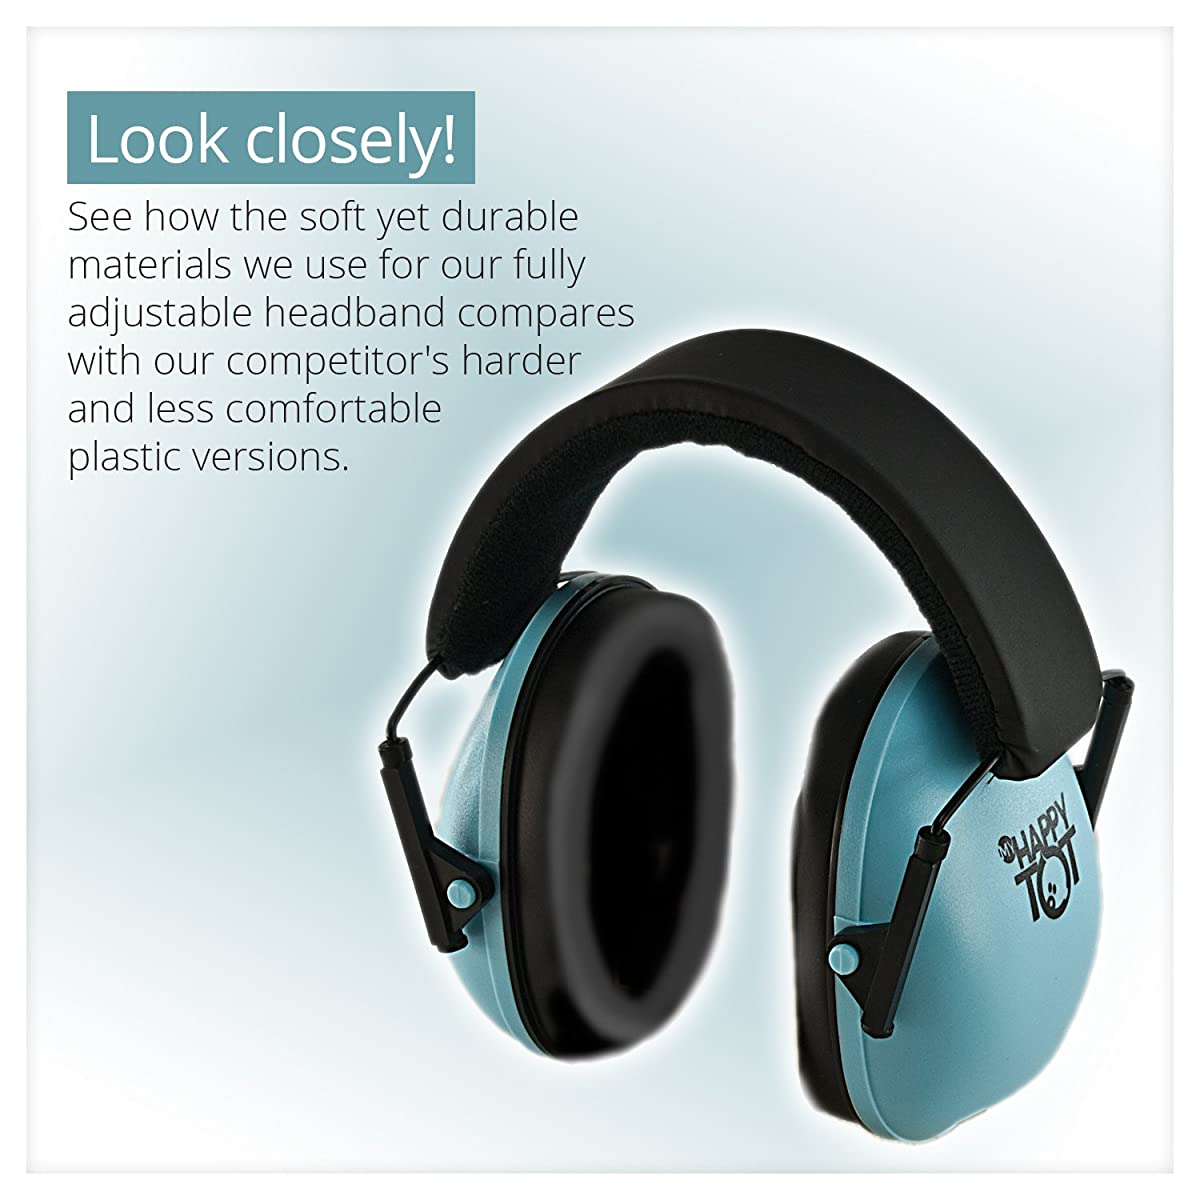 My Happy Tot Hearing Protection Earmuffs. Noise Reduction for Children & Infants, Fully Adjustable for 0-12 Yrs. Low Profile Cups, Padded Snug Fit Professional Hearing Defenders for Kids